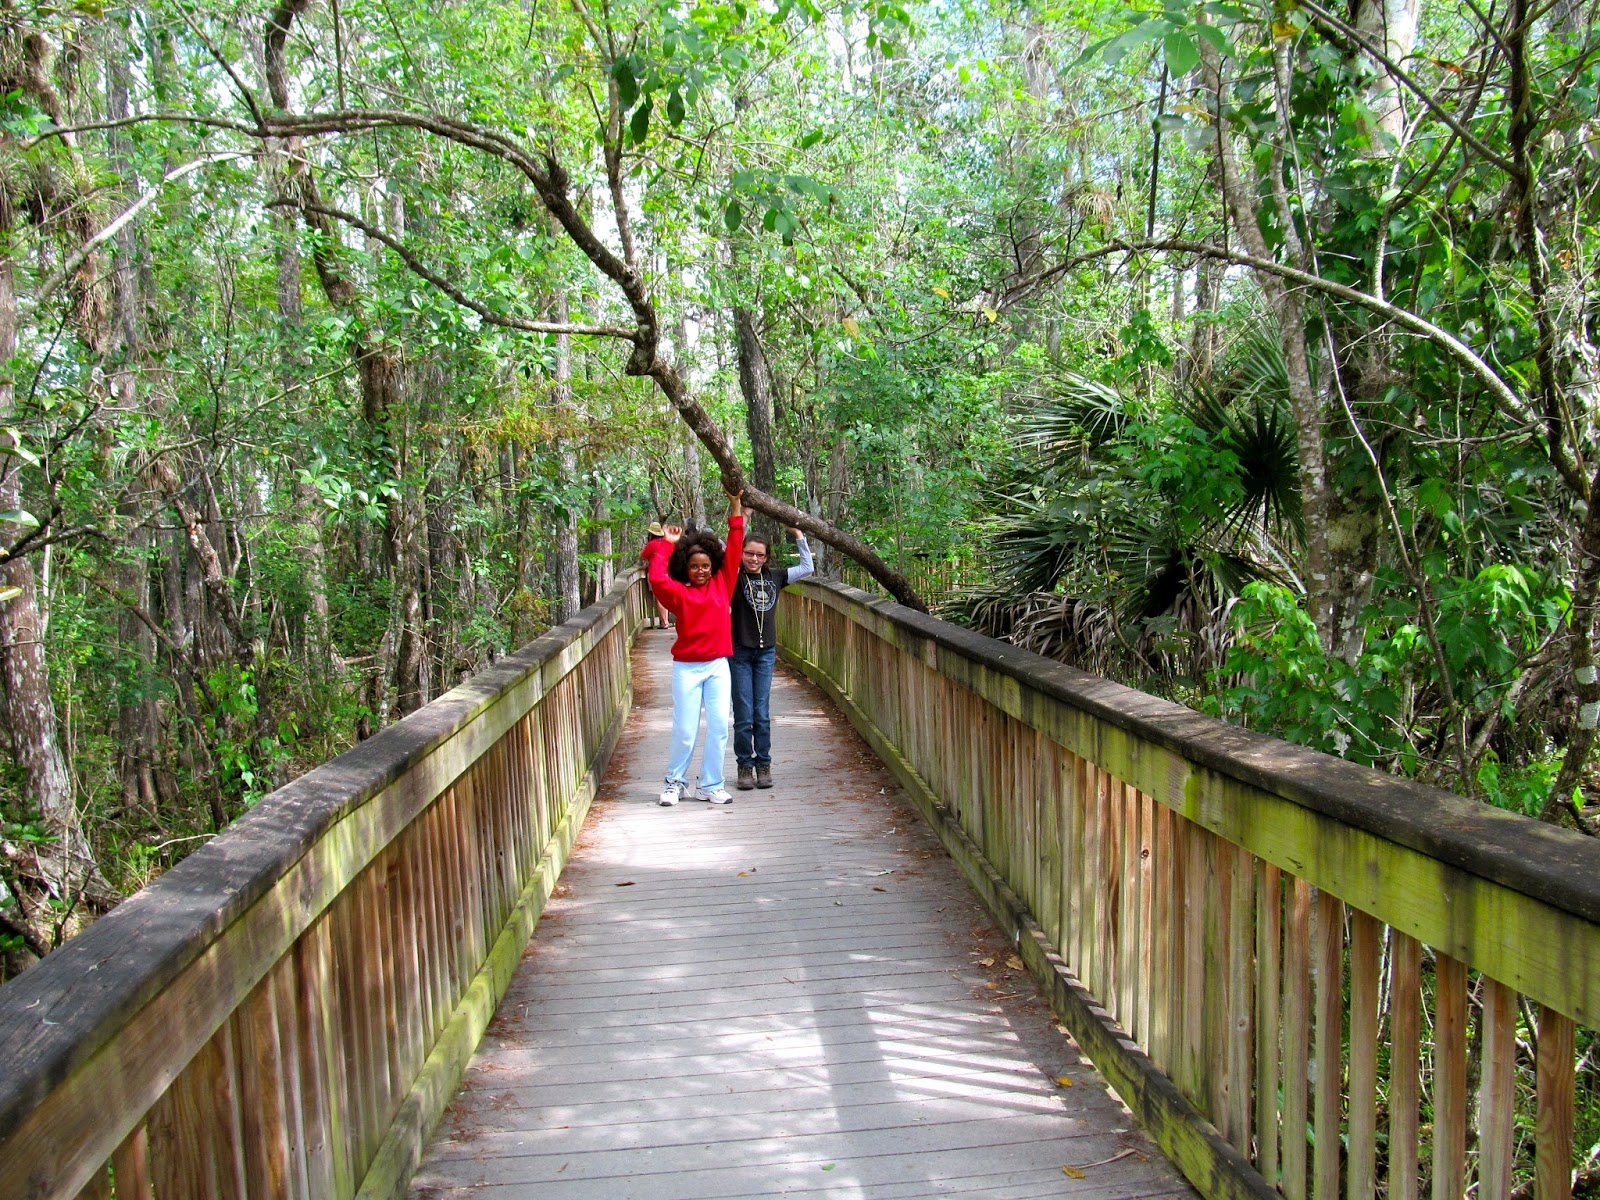 Kirby Storter Boardwalk - Big Cypress Swamp - Florida Everglades - Hiking